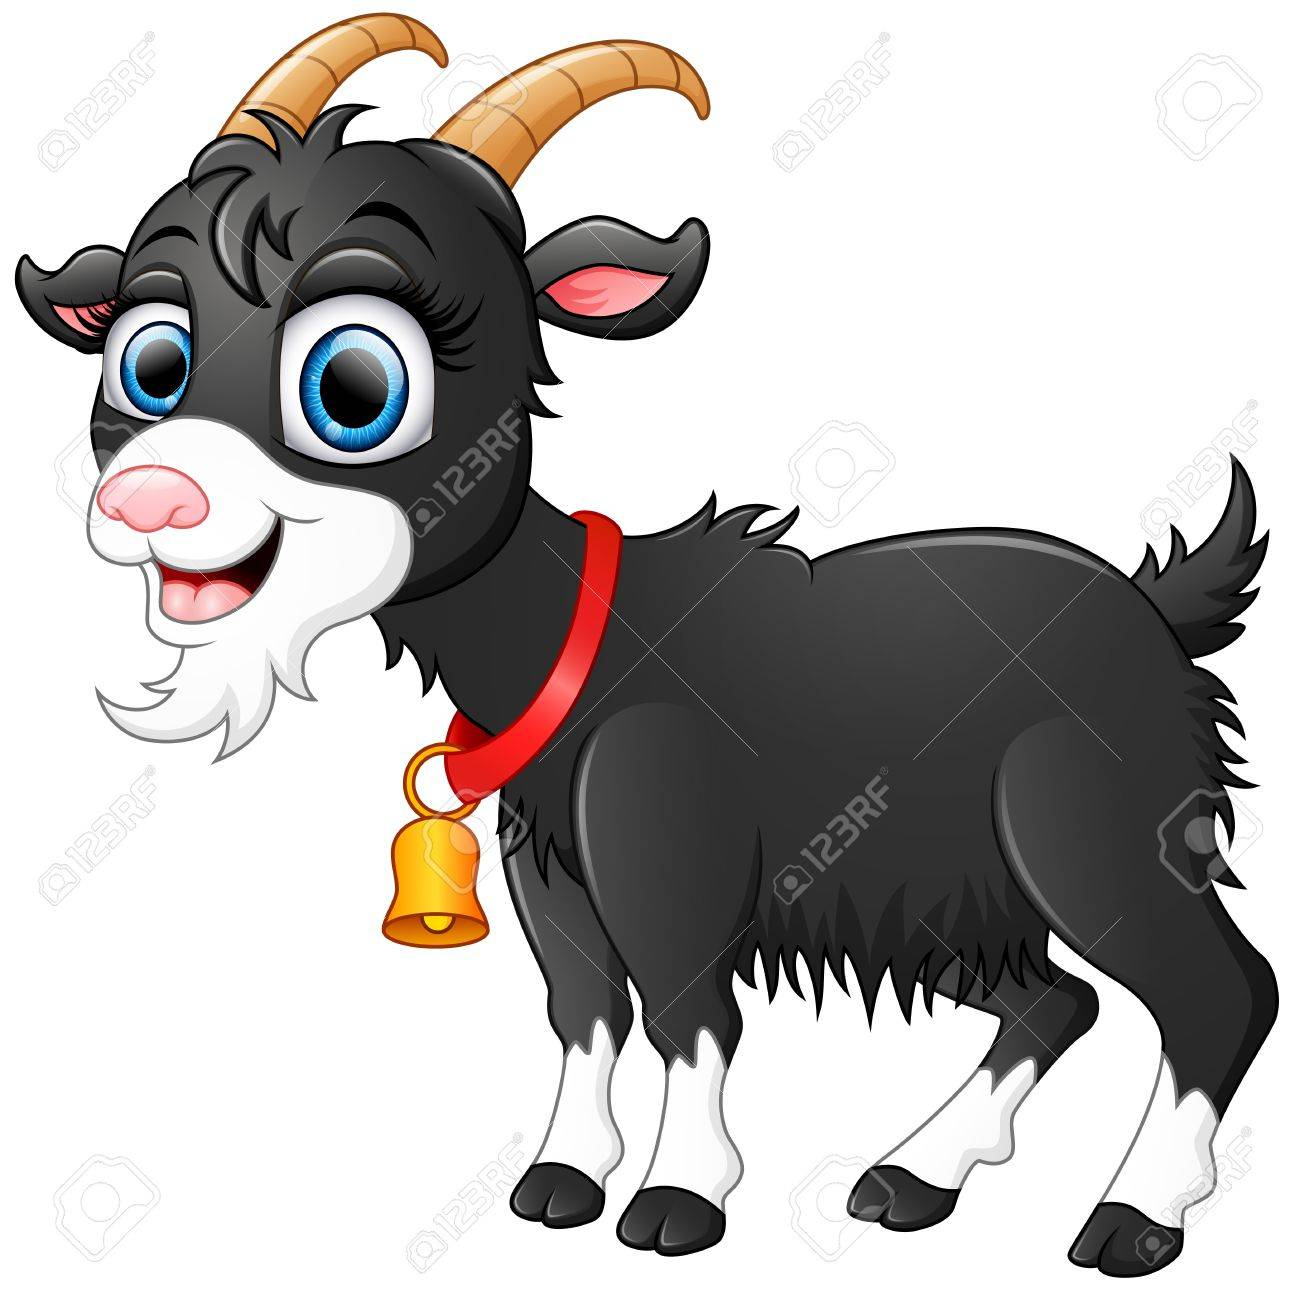 Baby Goat Clipart at GetDrawings | Free download